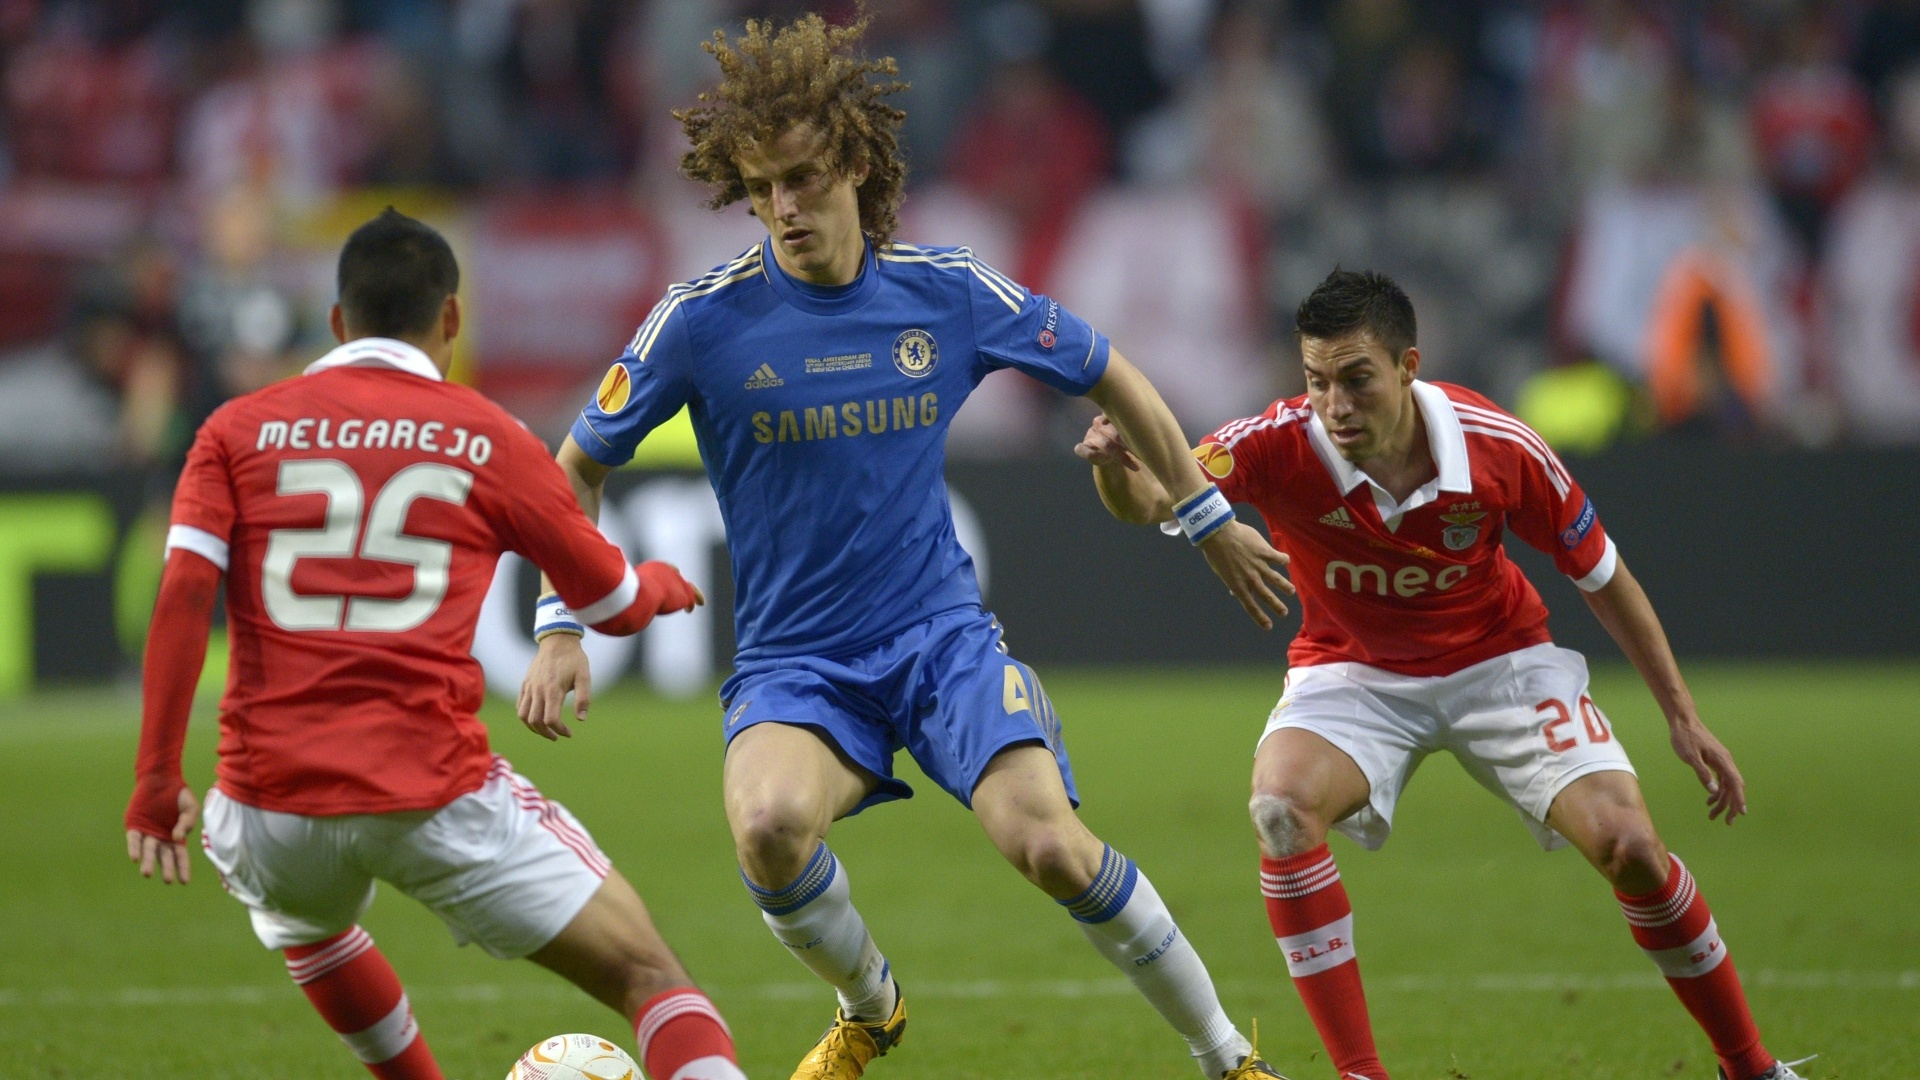 15.mai.2013 - Com sua vasta cabeleira, zagueiro David Luiz, do Chelsea, tenta passar pela marcao do Benfica durante a final da Liga Europa